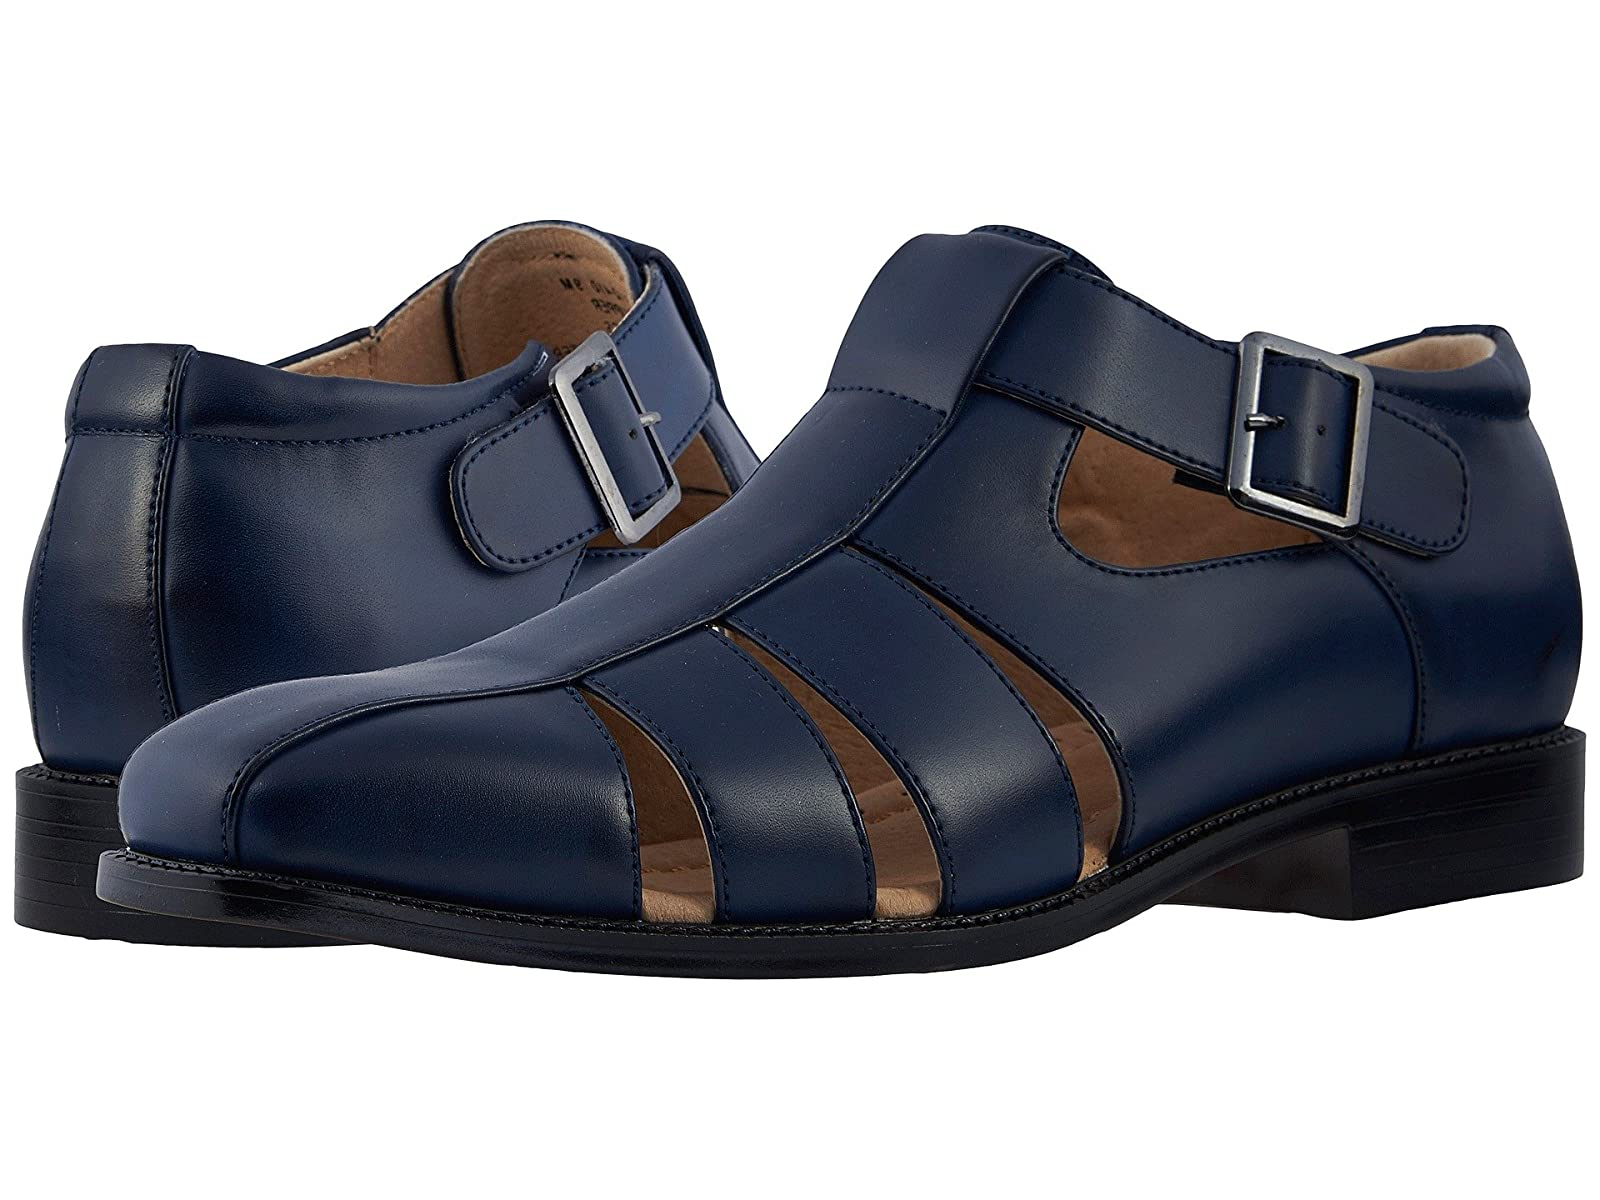 Stacy Adams CalistoAtmospheric grades have affordable shoes